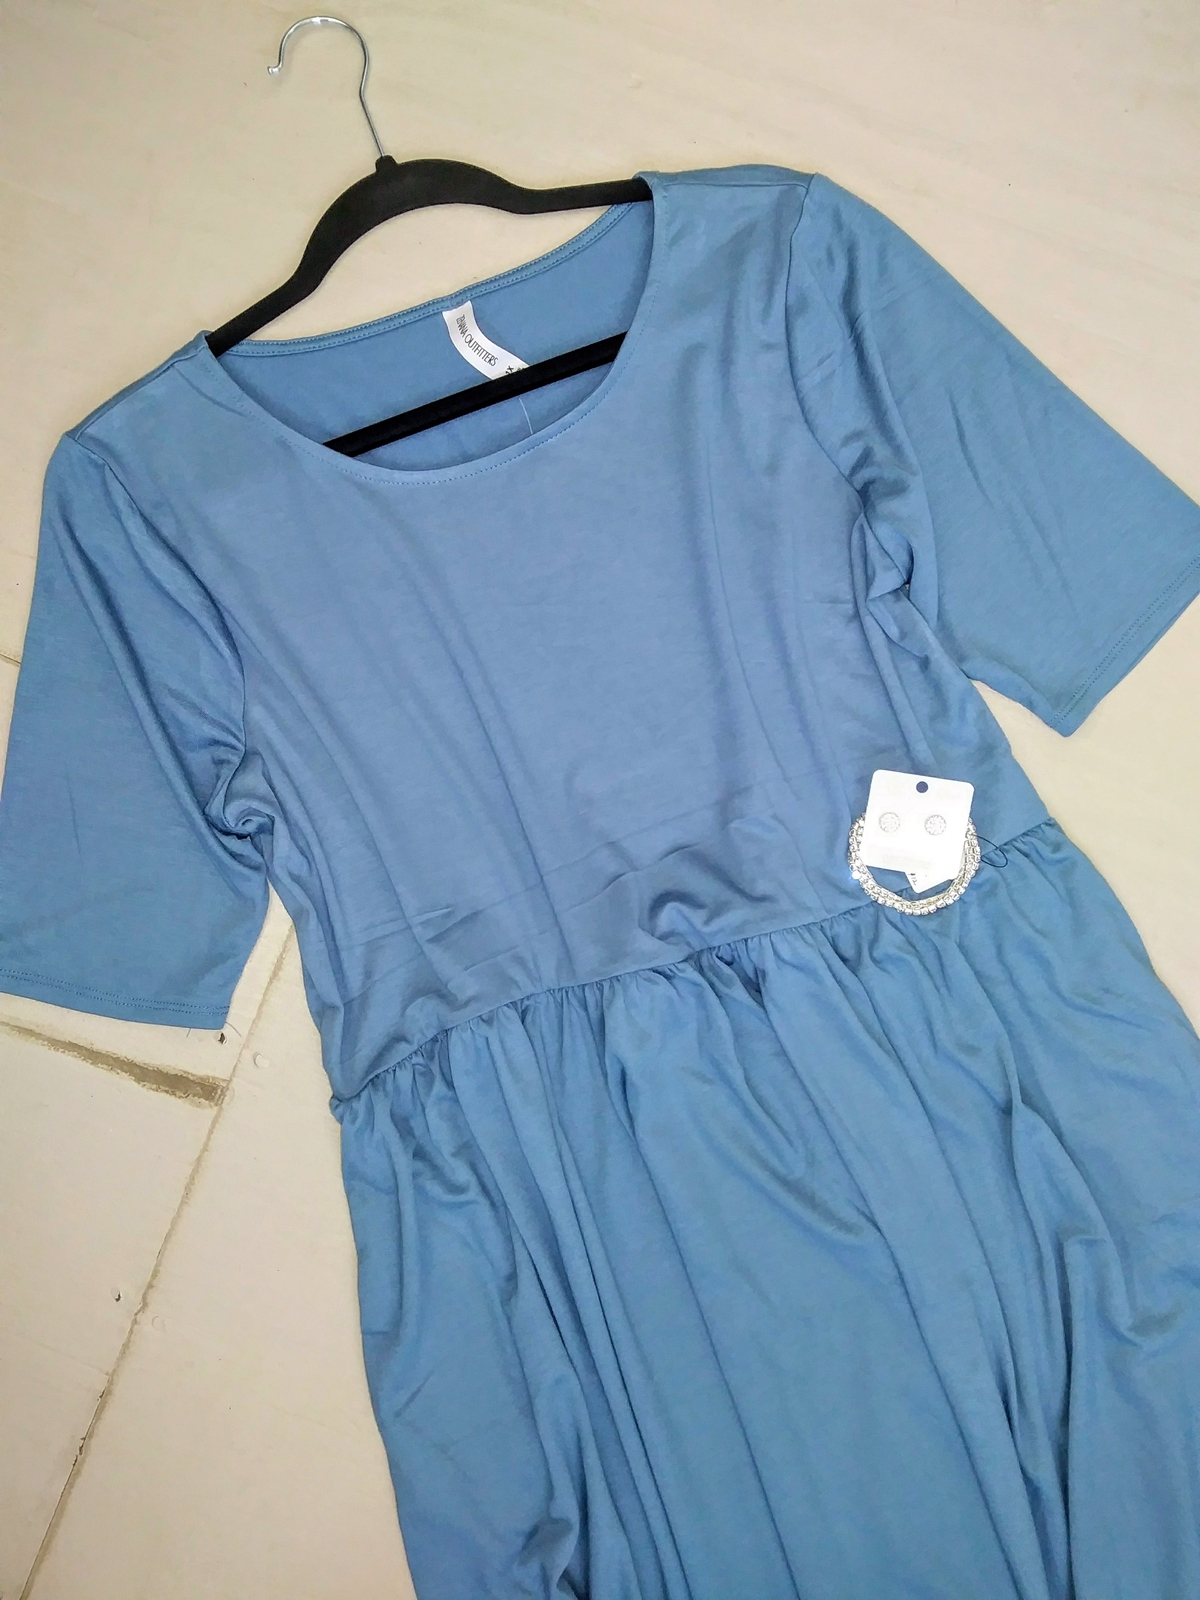 Plus Midi Dress, Blue Fit and Flare Dress, Dress with Pockets, Colbert Clothing